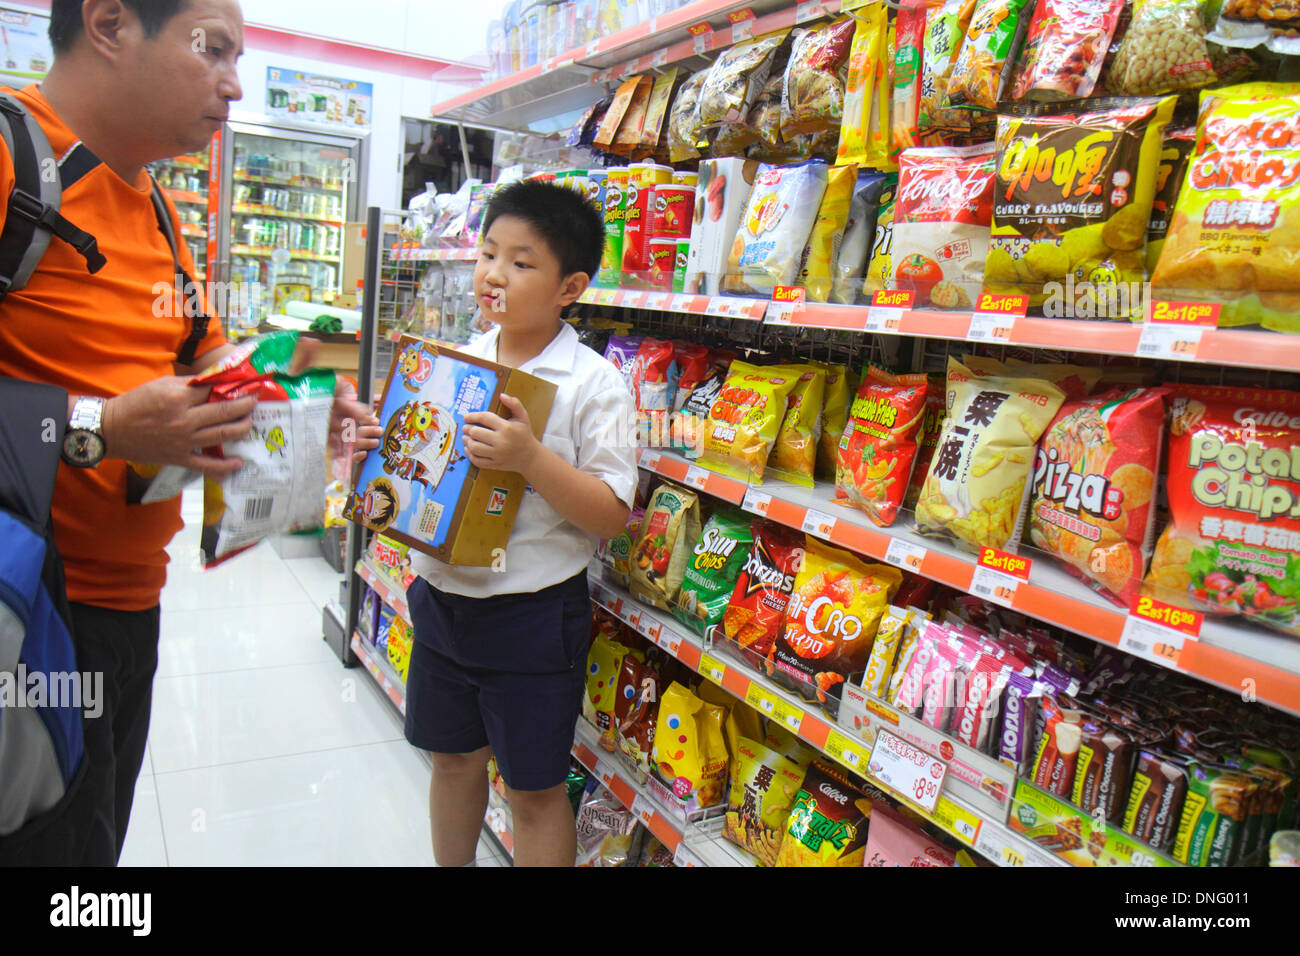 Hong Kong China Island North Point Java Road Wellcome Supermarket grocery store shopping sale display shelves bags potato chips - Stock Image